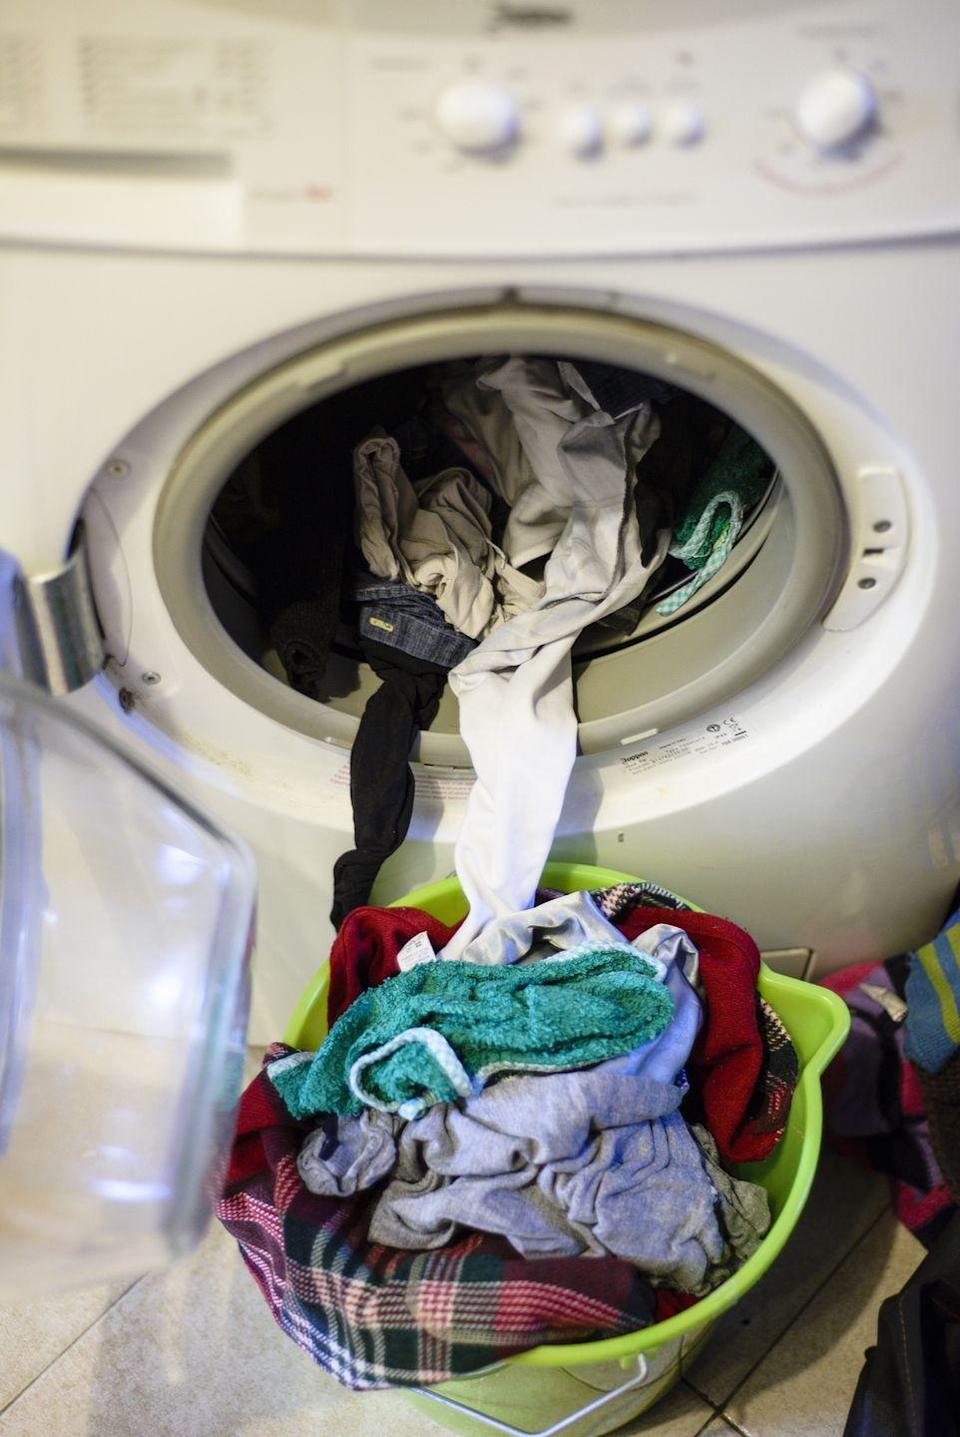 <p>It's stained, has a few holes, and you probably have a pair of pants (and okay, undies) to match. Rather than keep these items around for when you've cycled through your good clothes, make room in your closet for something a little less...lived in. </p>